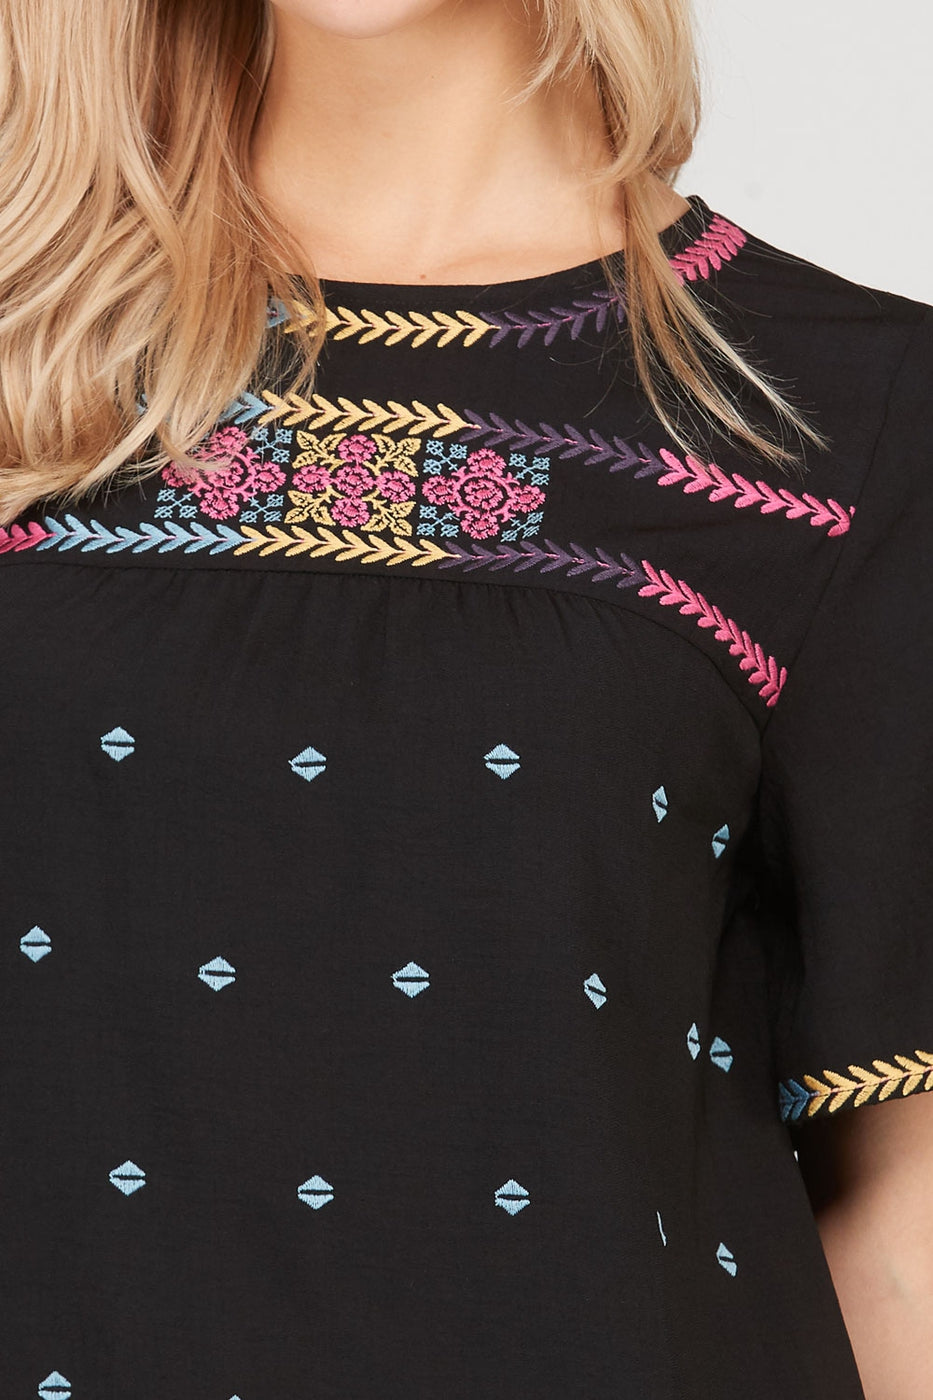 Casual Black Short Sleeve Top Colorful Ethnic Embroidered Siin Bees